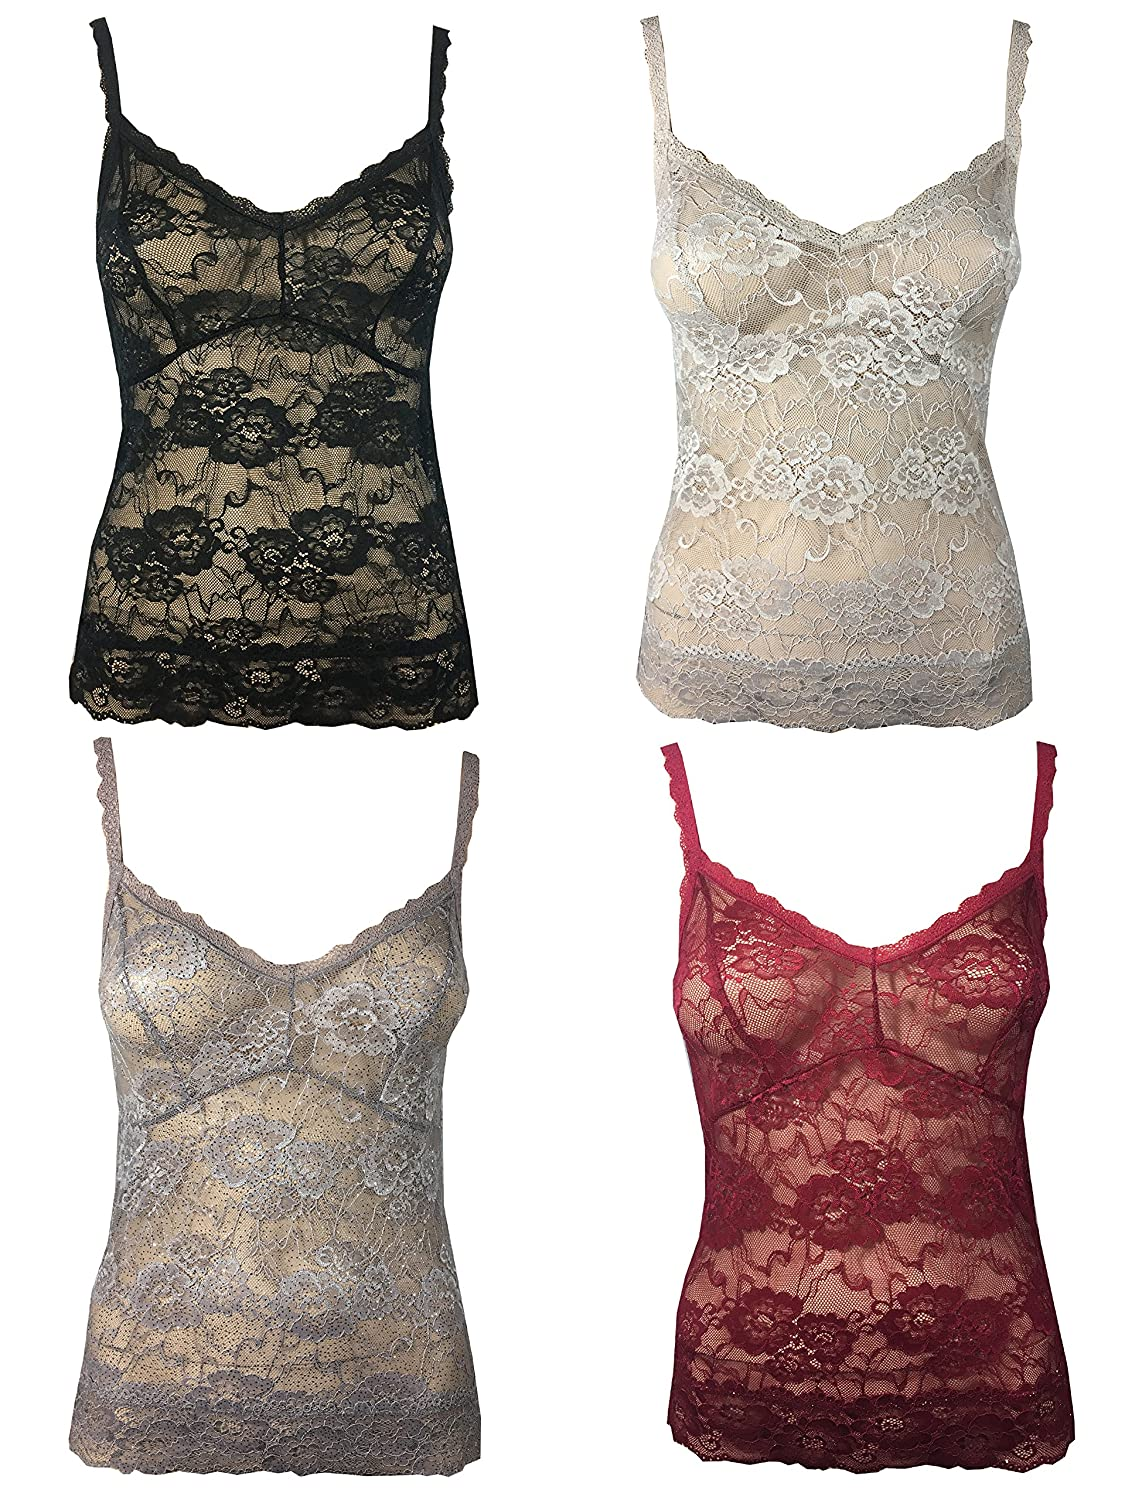 Ladies Marks & Spencer Isabella Lace Cami Vest Top Lingerie Nightwear M&S 6-18 (12, Red With Sparkle Bottom)